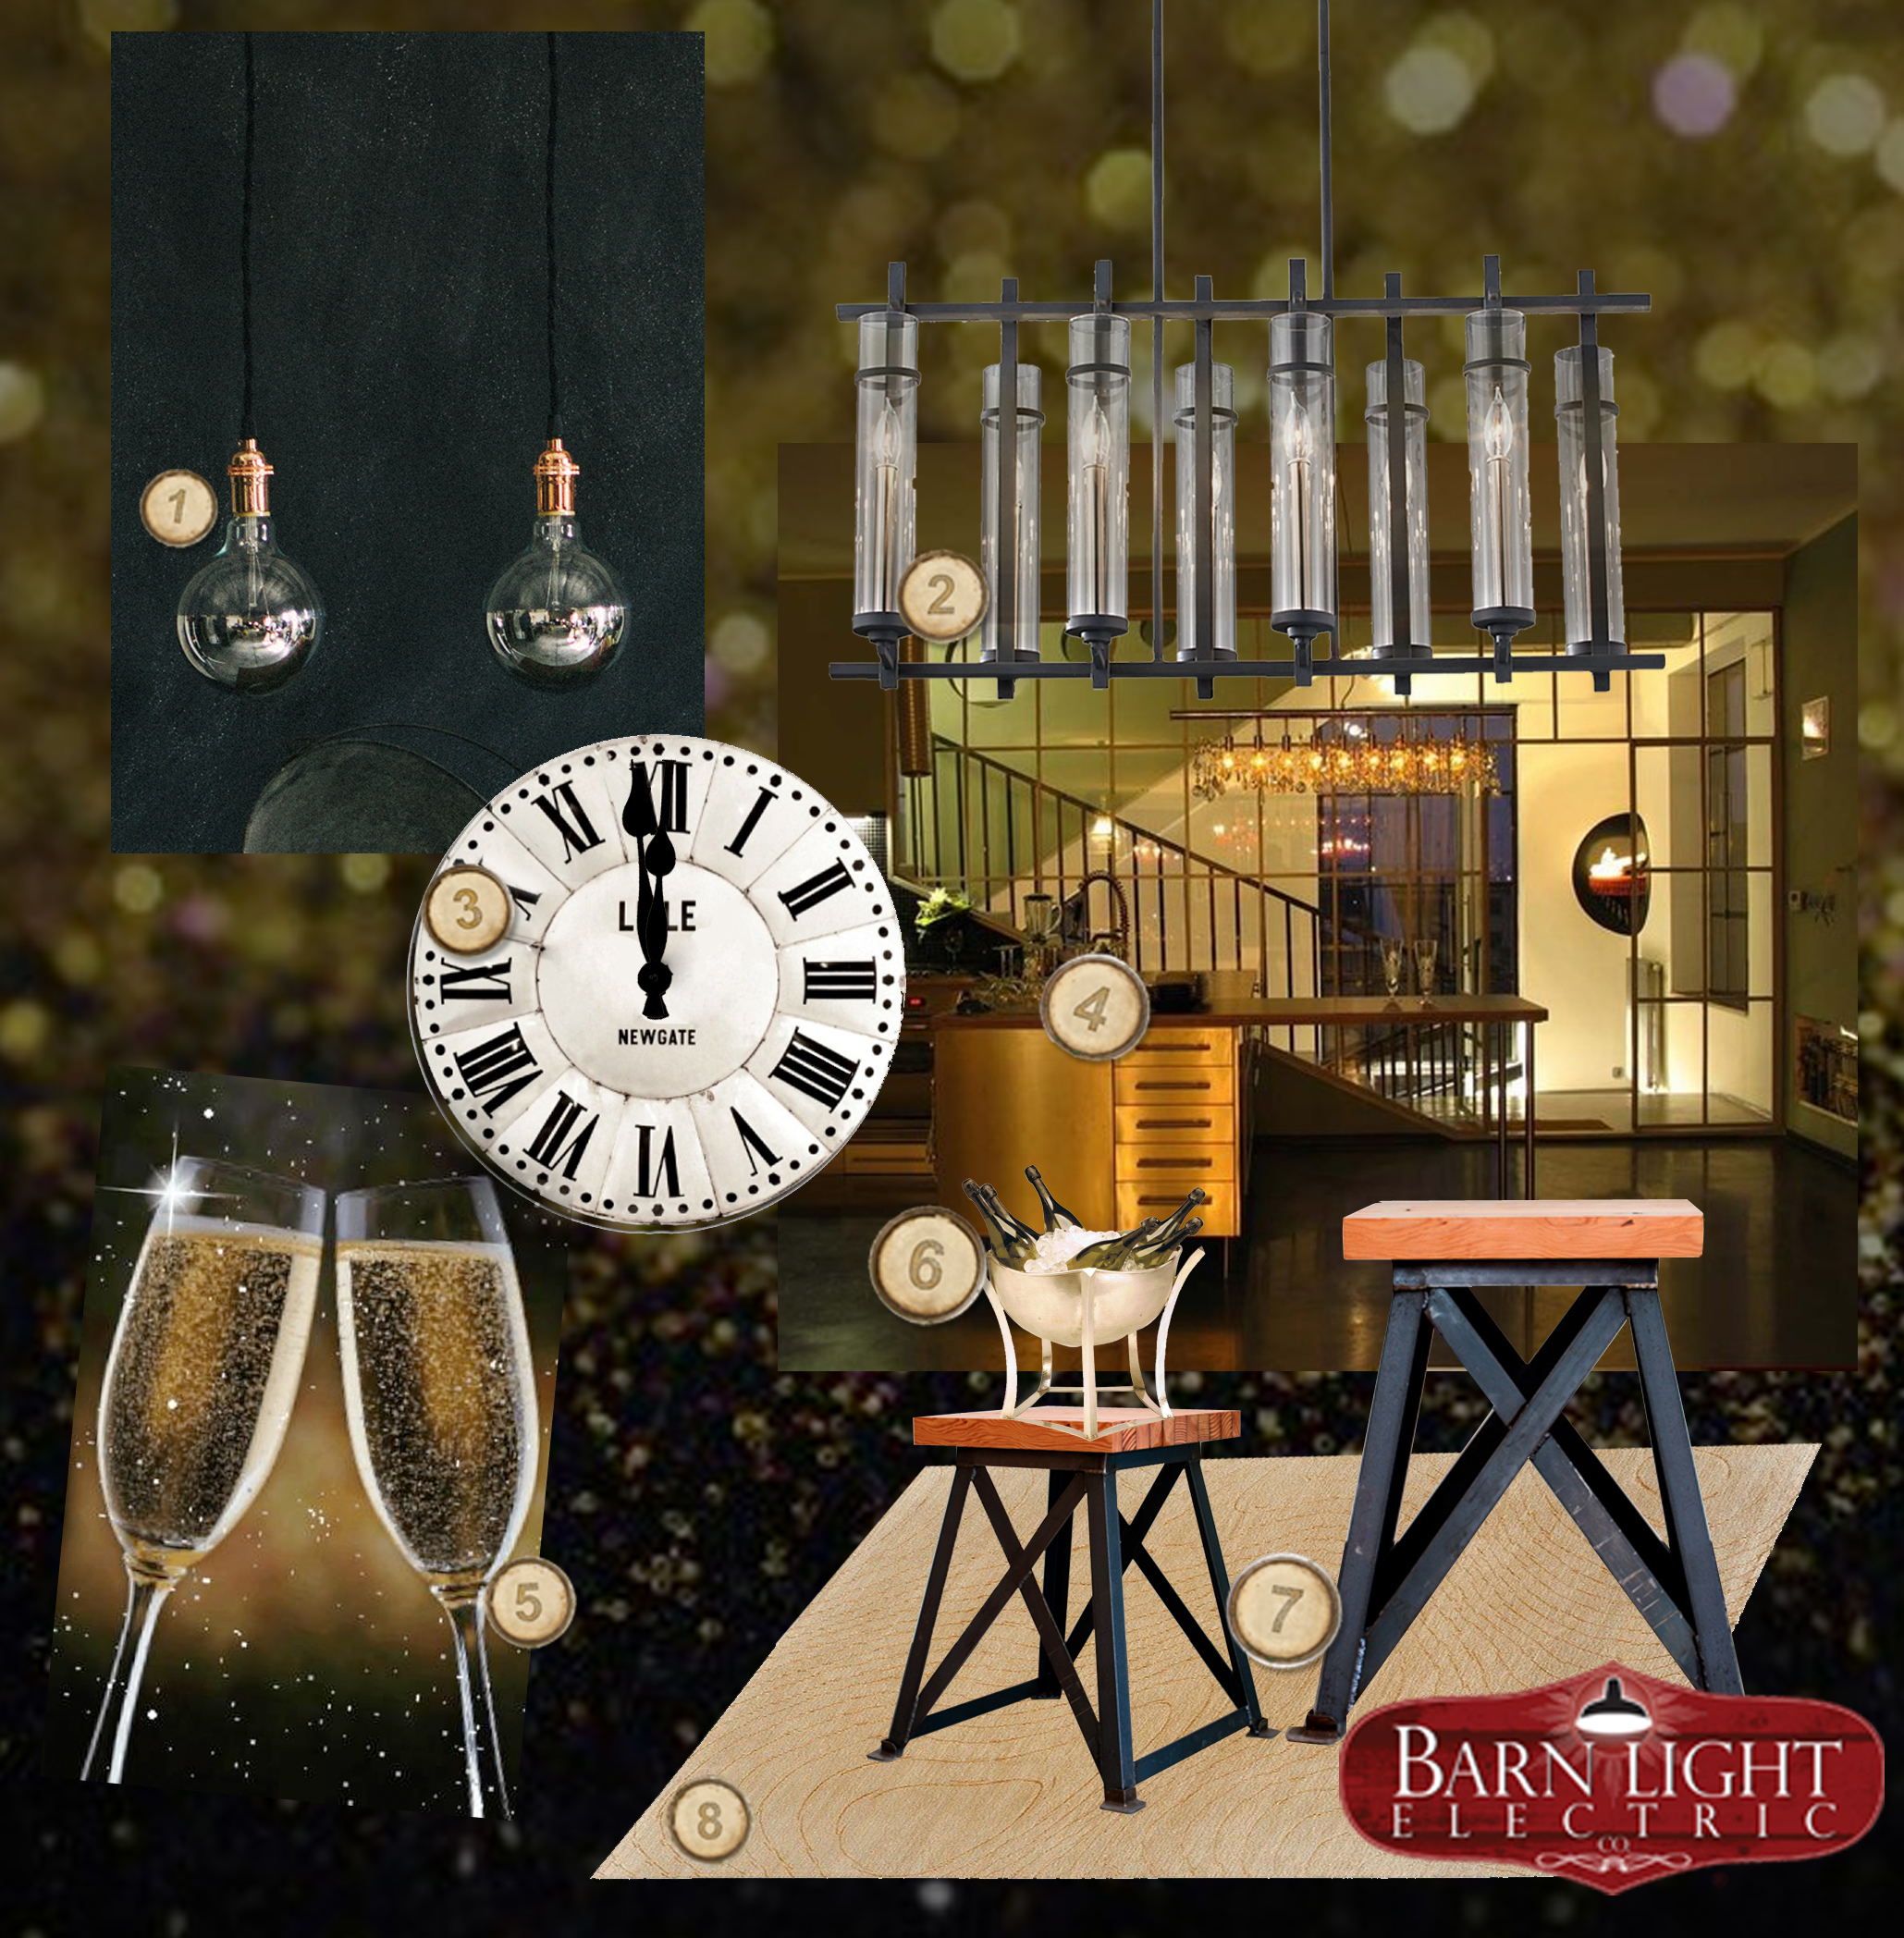 Ringing in the 2013 New Year with decor from Barn Light